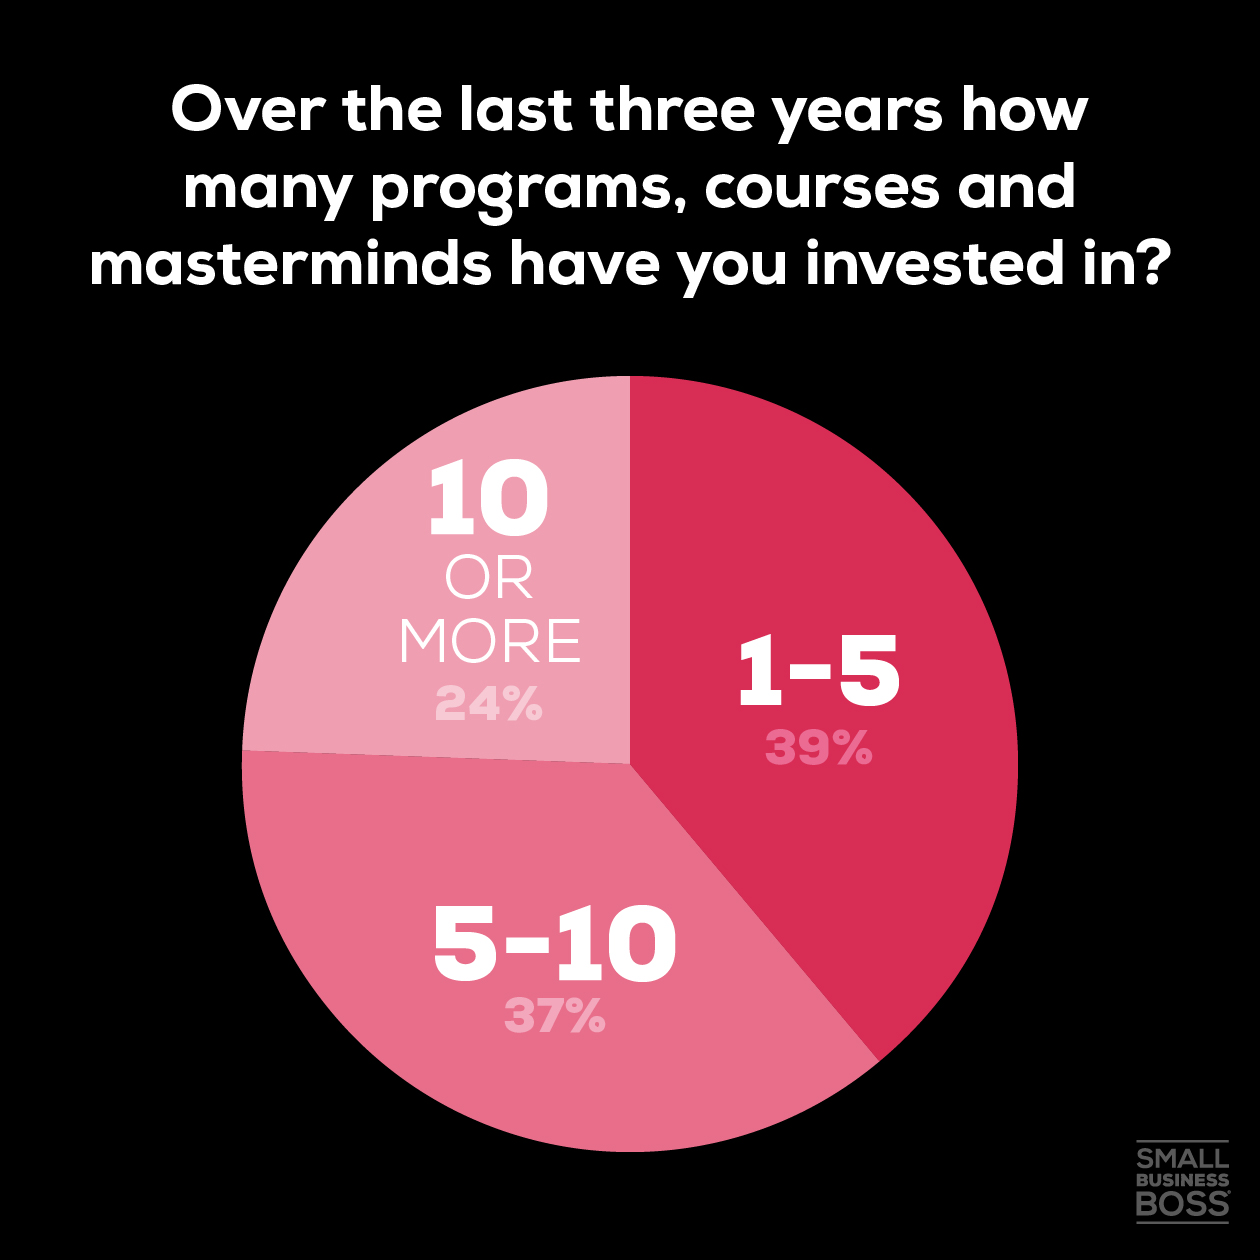 How many have you invested in